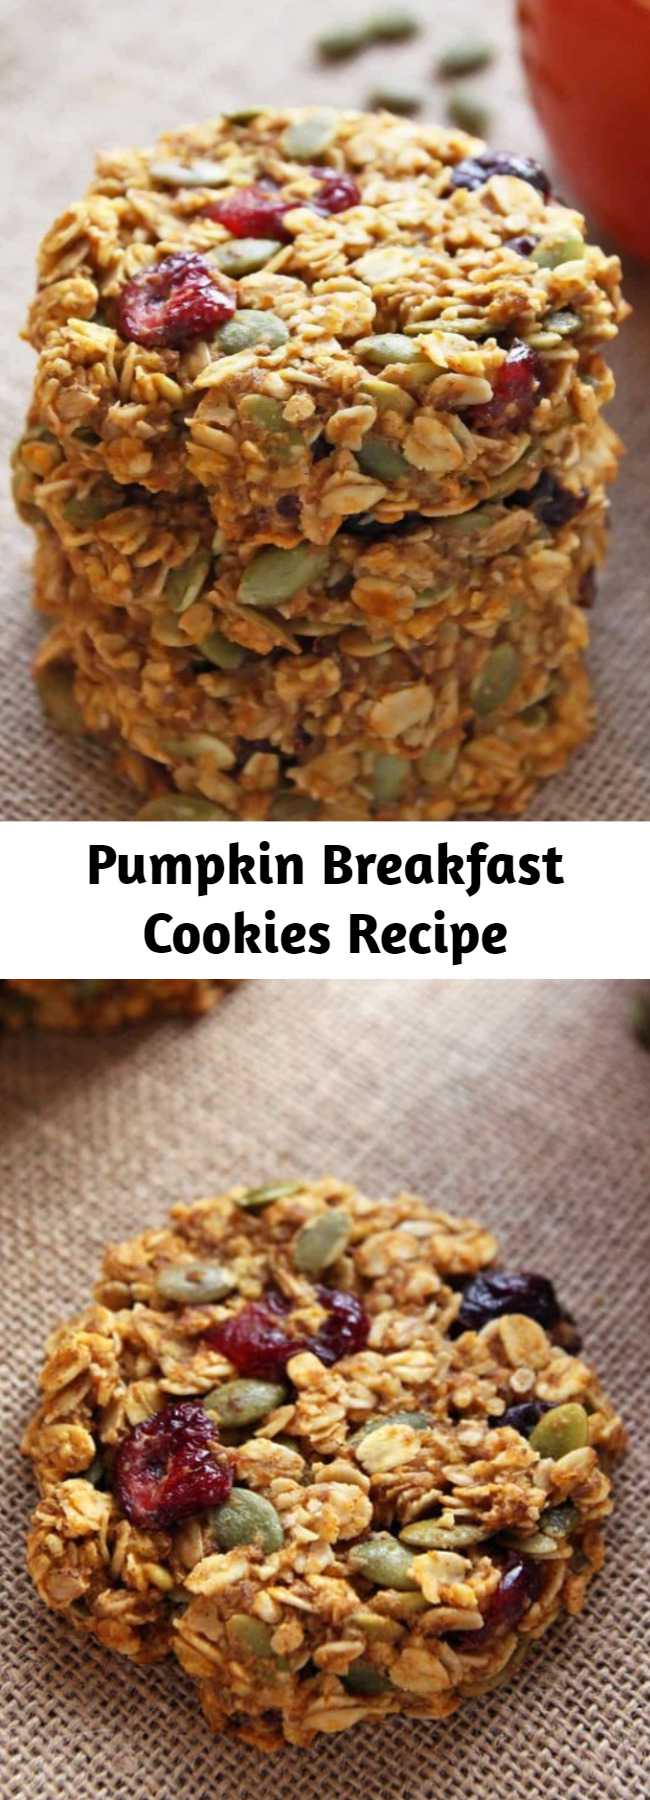 Pumpkin Breakfast Cookies Recipe - These healthy Pumpkin Breakfast Cookies make a nutritious and grab-and-go breakfast that tastes like fall! This gluten-free and clean eating breakfast treat is made with wholegrain oats, cranberries, pumpkin seeds and honey.